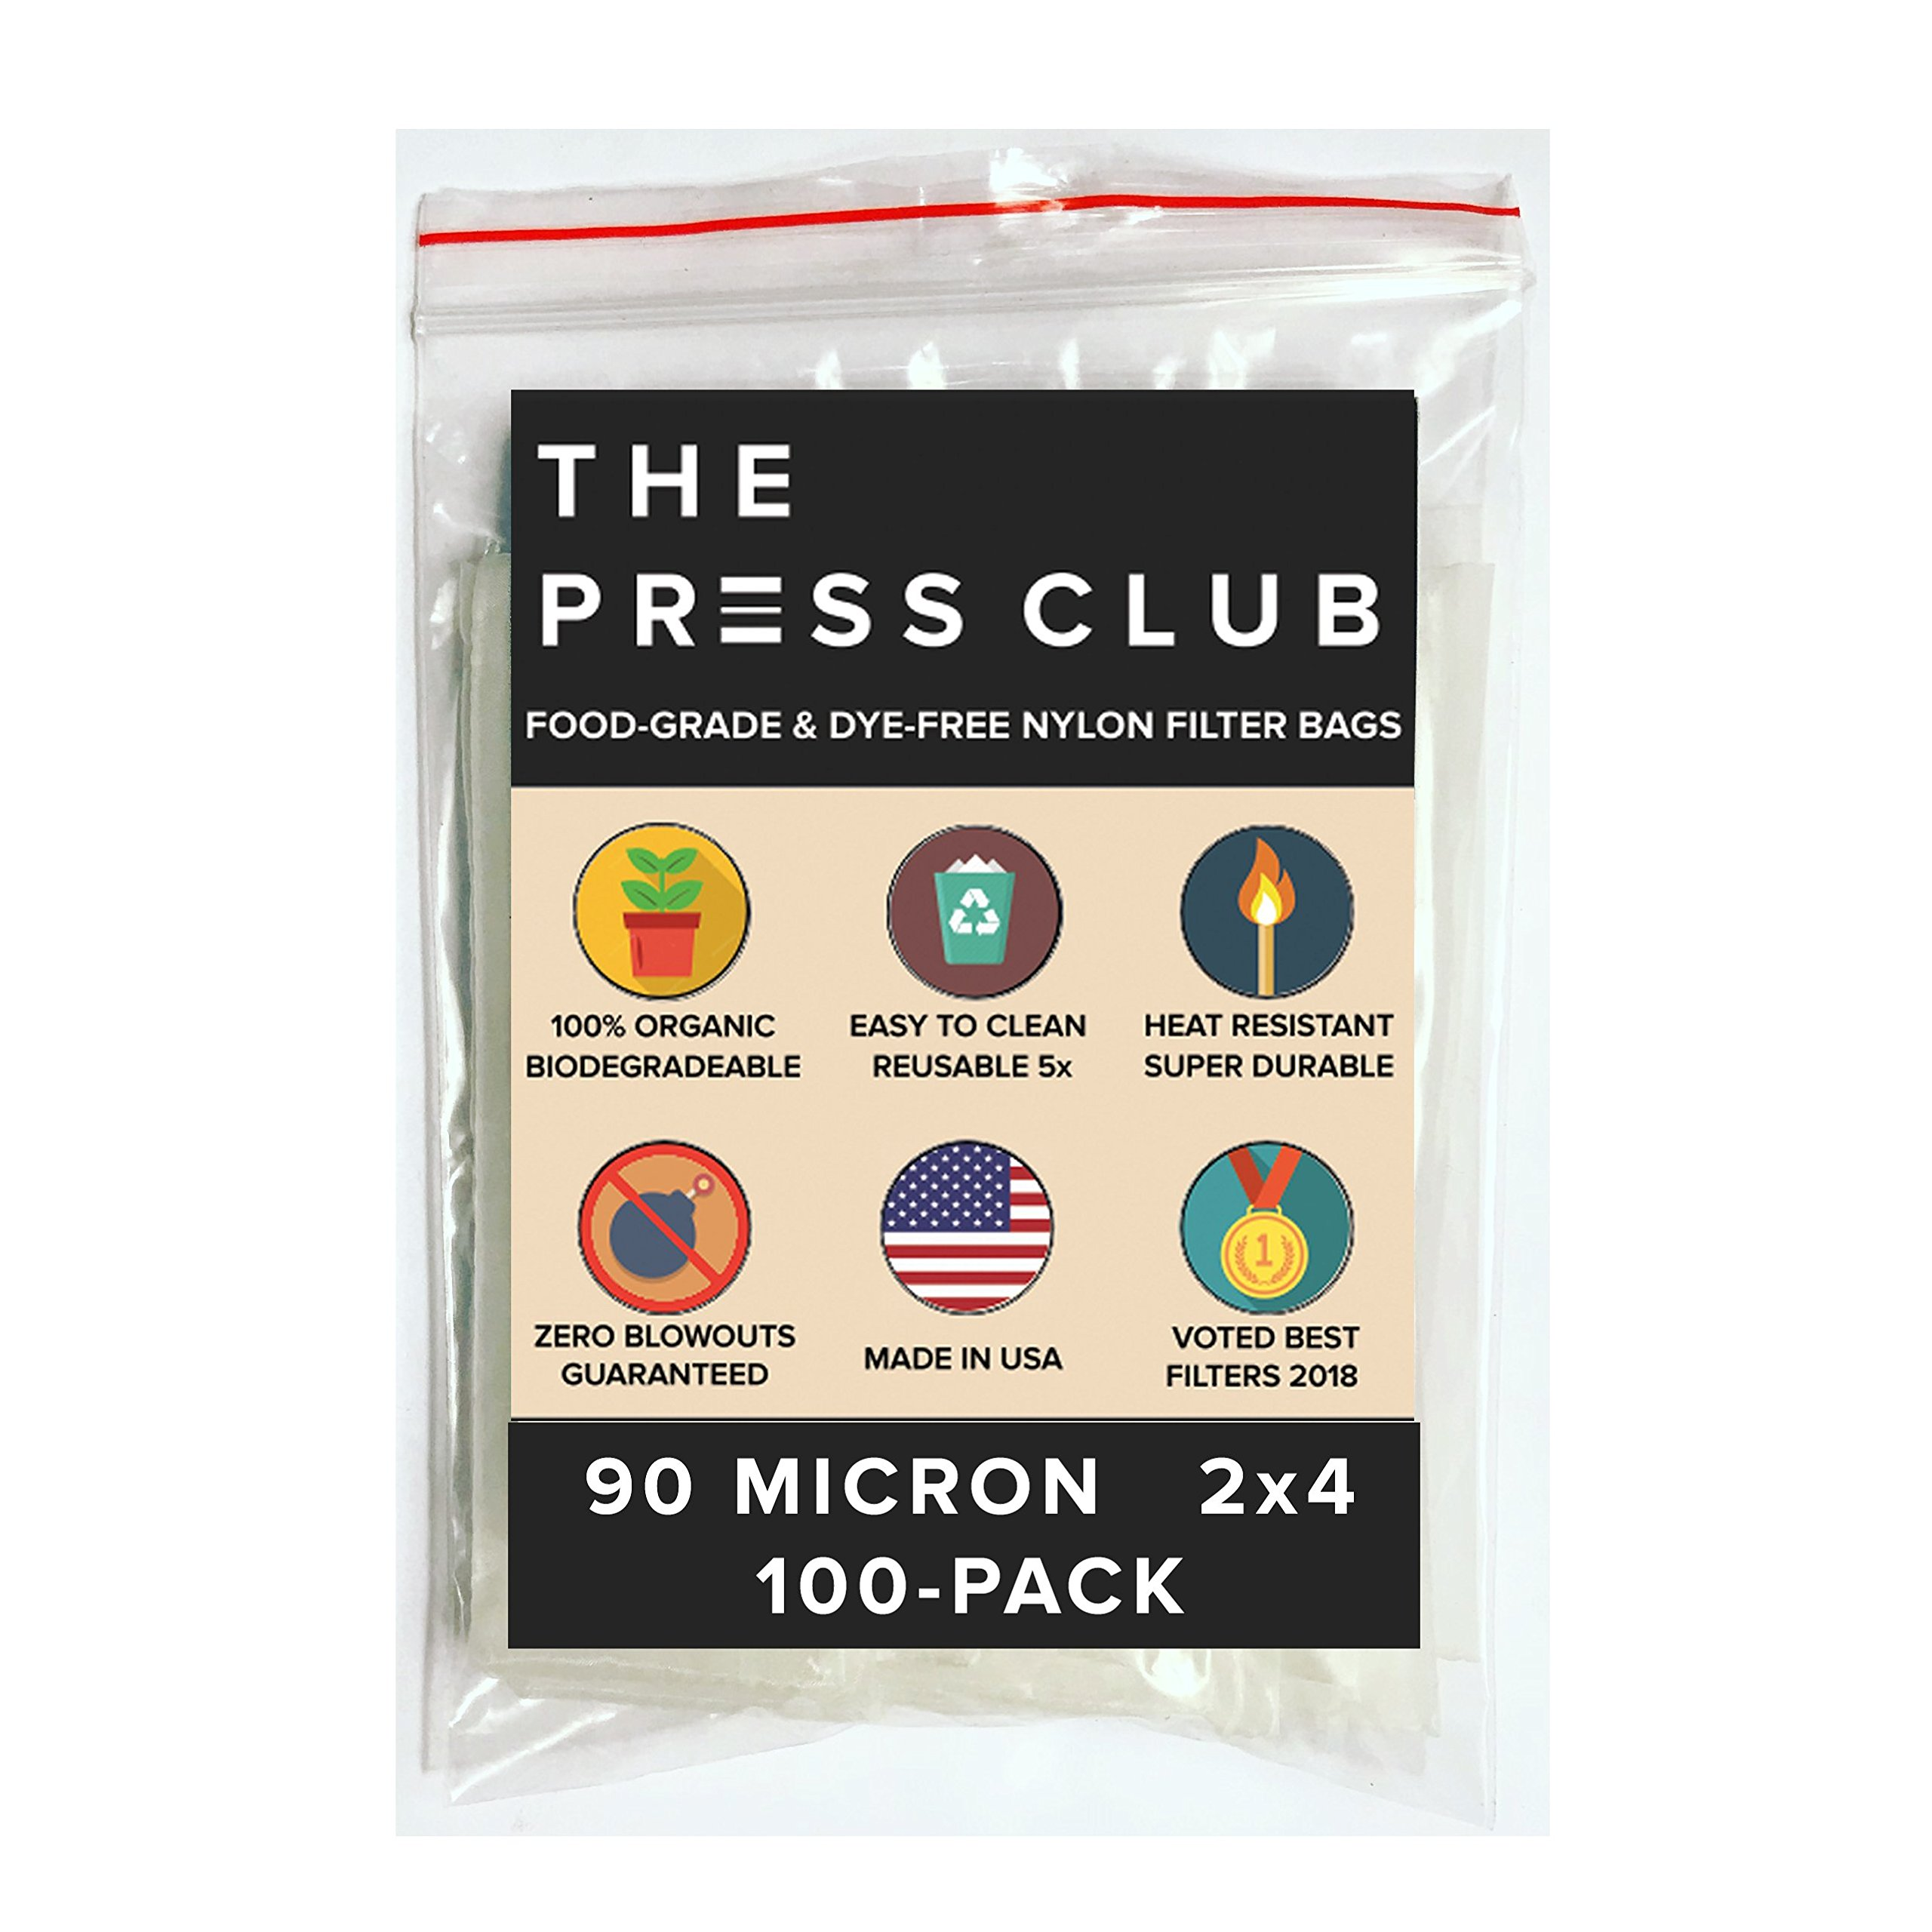 90 Micron | Premium Nylon Tea Filter Press Screen Bags | 2'' x 4'' | 100 Pack | Zero Blowout Guarantee | All Micron & Sizes Available by The Press Club